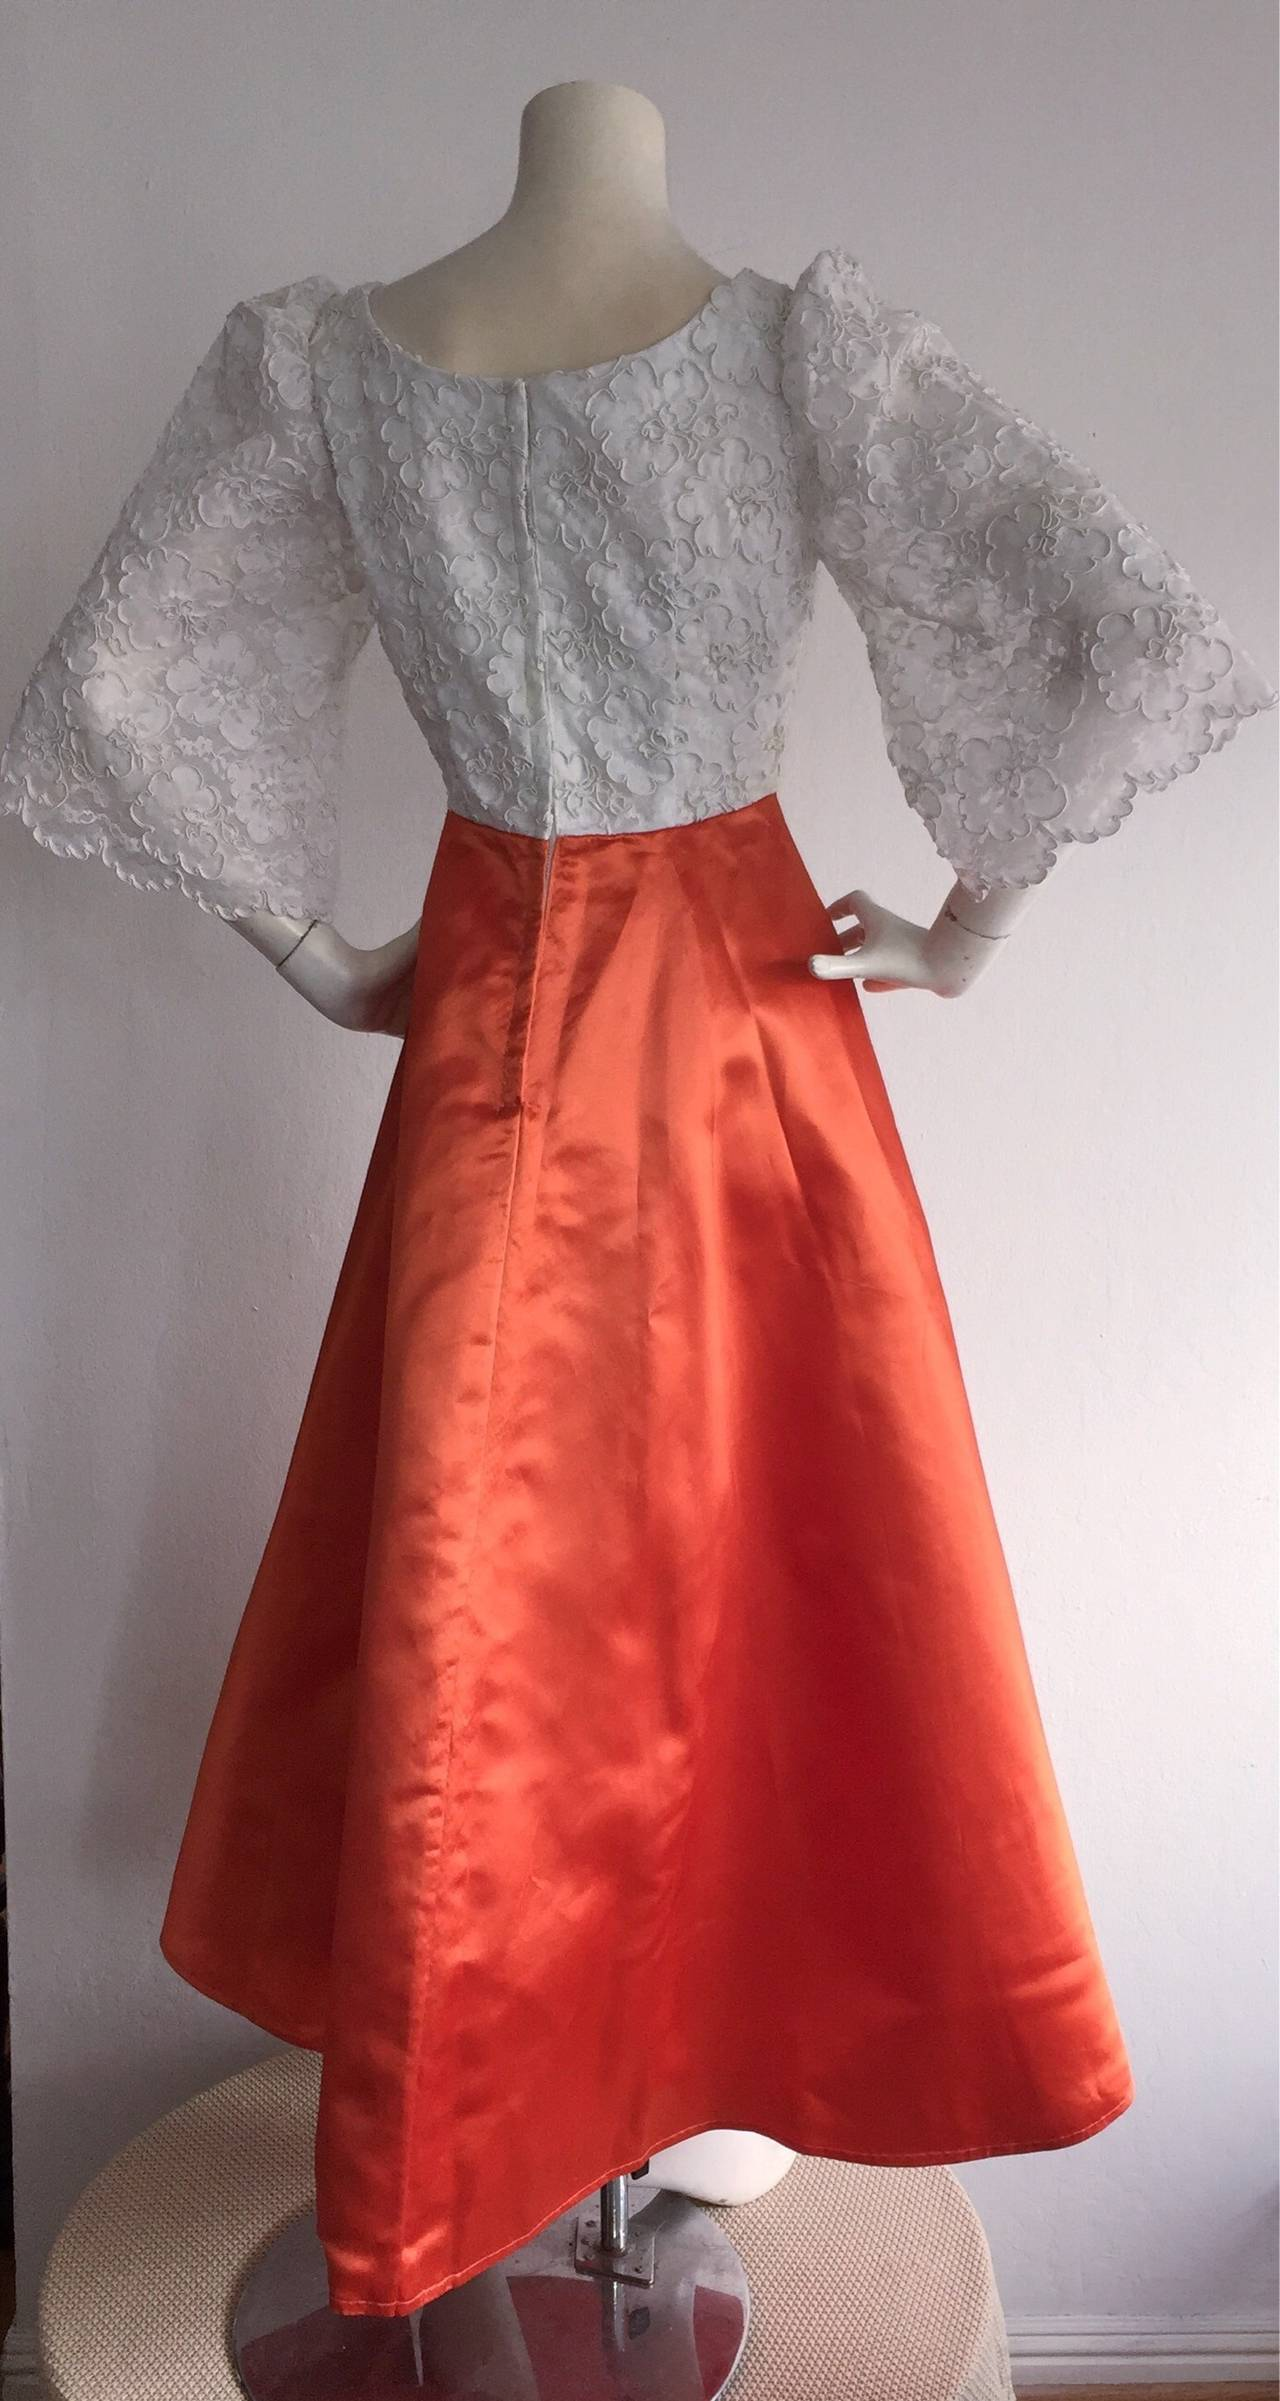 Gorgeous 1960s Orange Satin + White Lace Bell Sleeve Embellished Custom Dress In Excellent Condition For Sale In San Francisco, CA